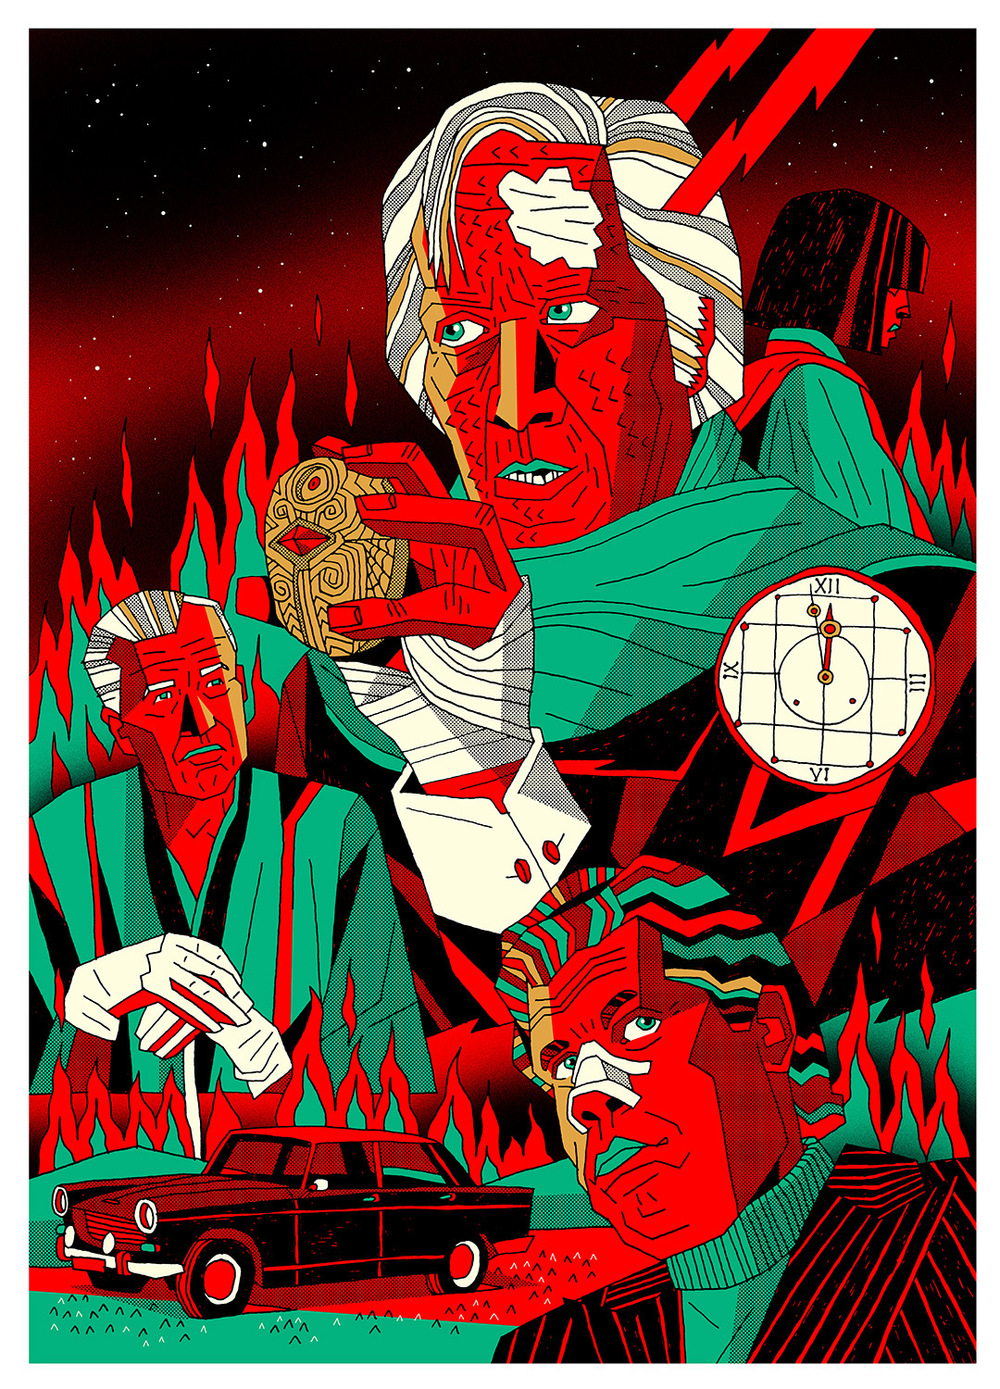 guillermo-del-toro-tribute-art-show-collection-in-service-of-monsters9.jpg